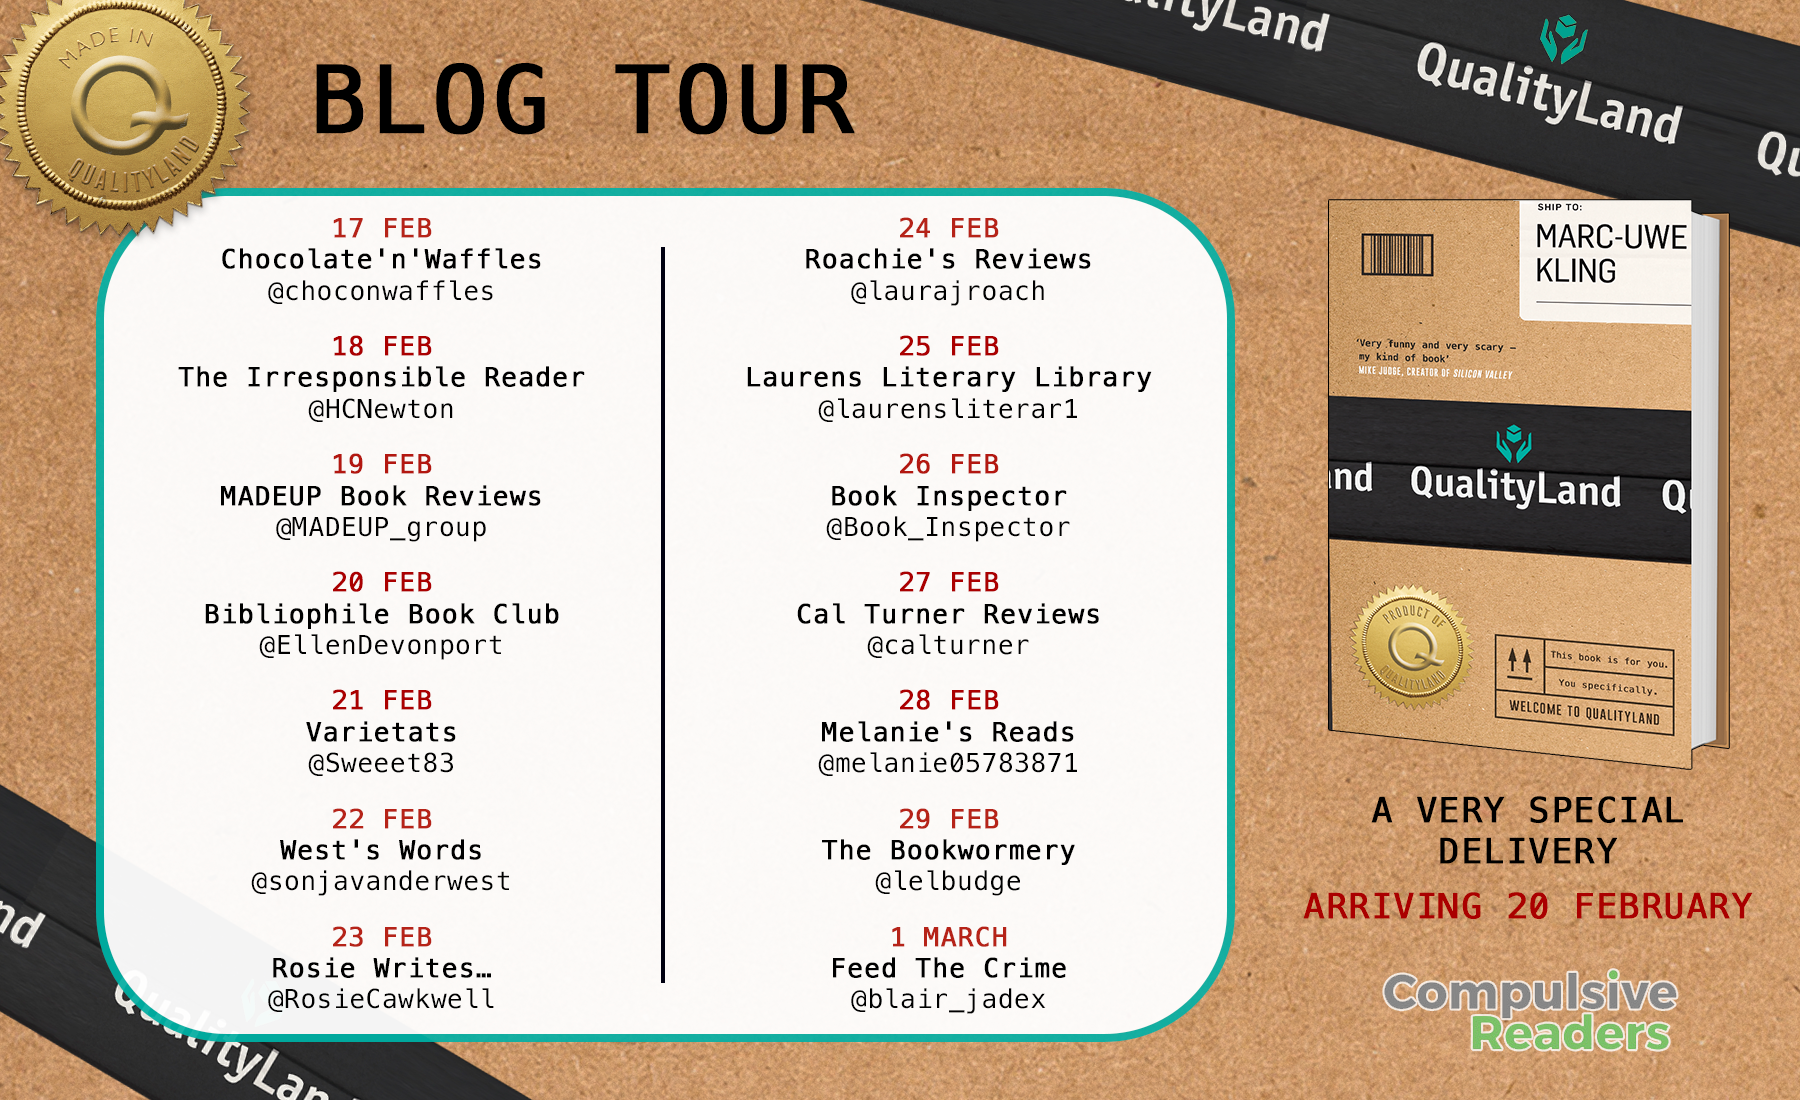 QUALITYLAND blog tour